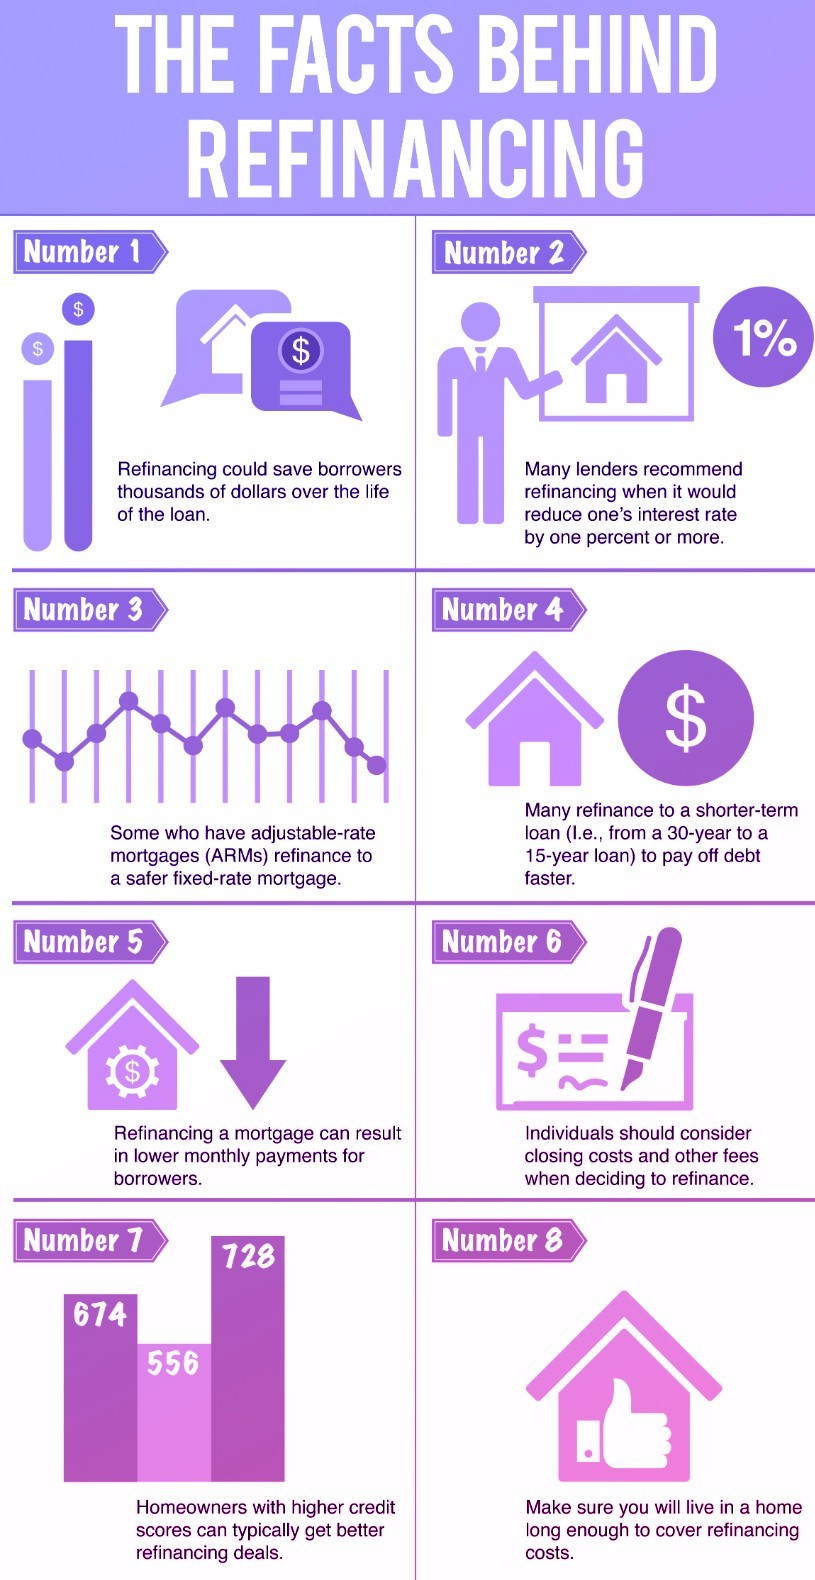 8 Facts behind Refinancing